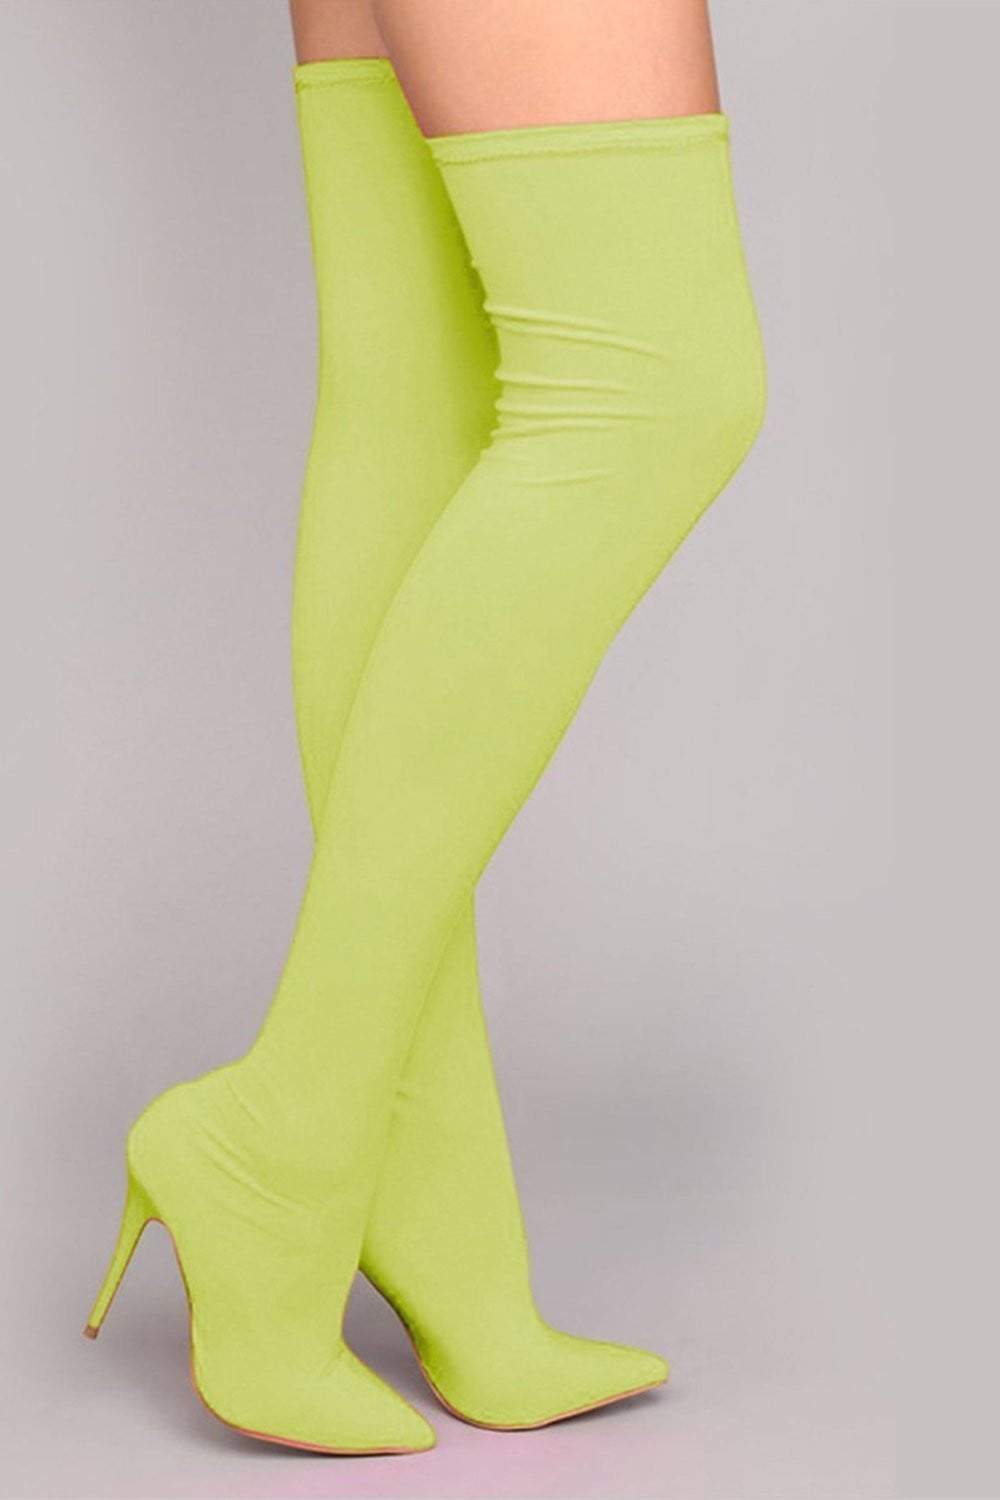 Neon Yellow Thigh High Boots